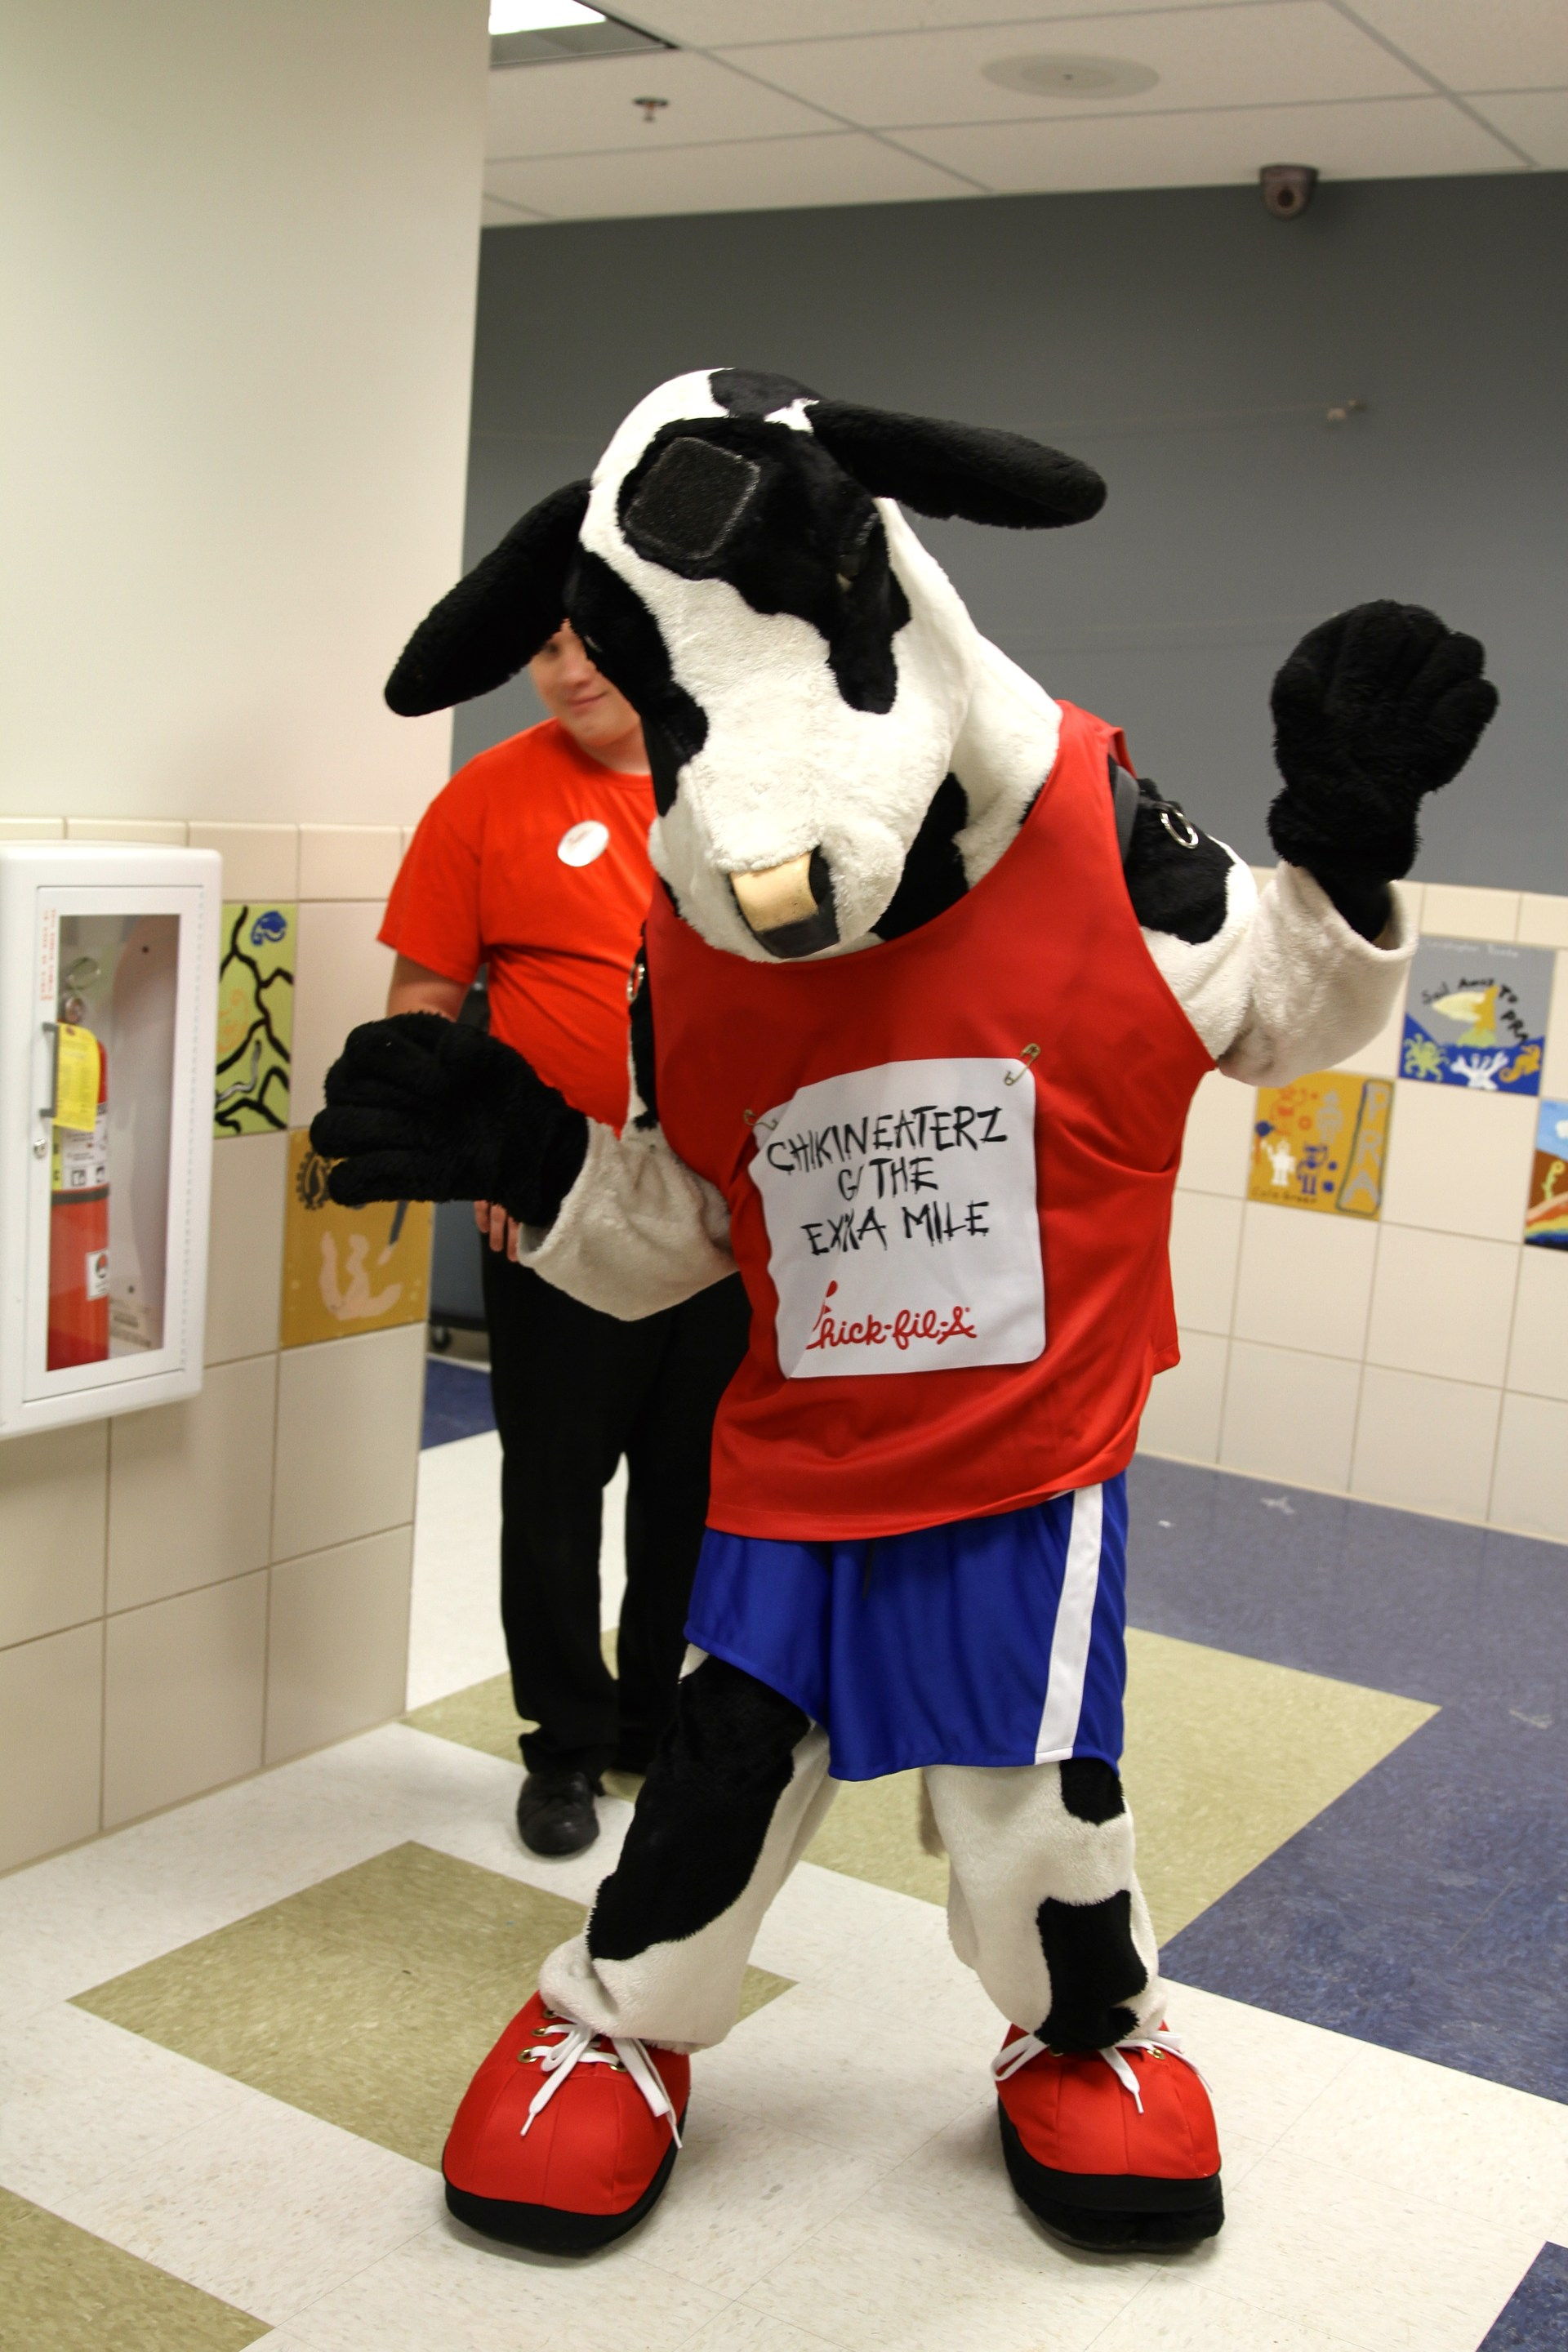 Chick-Fil-A Cow dancing